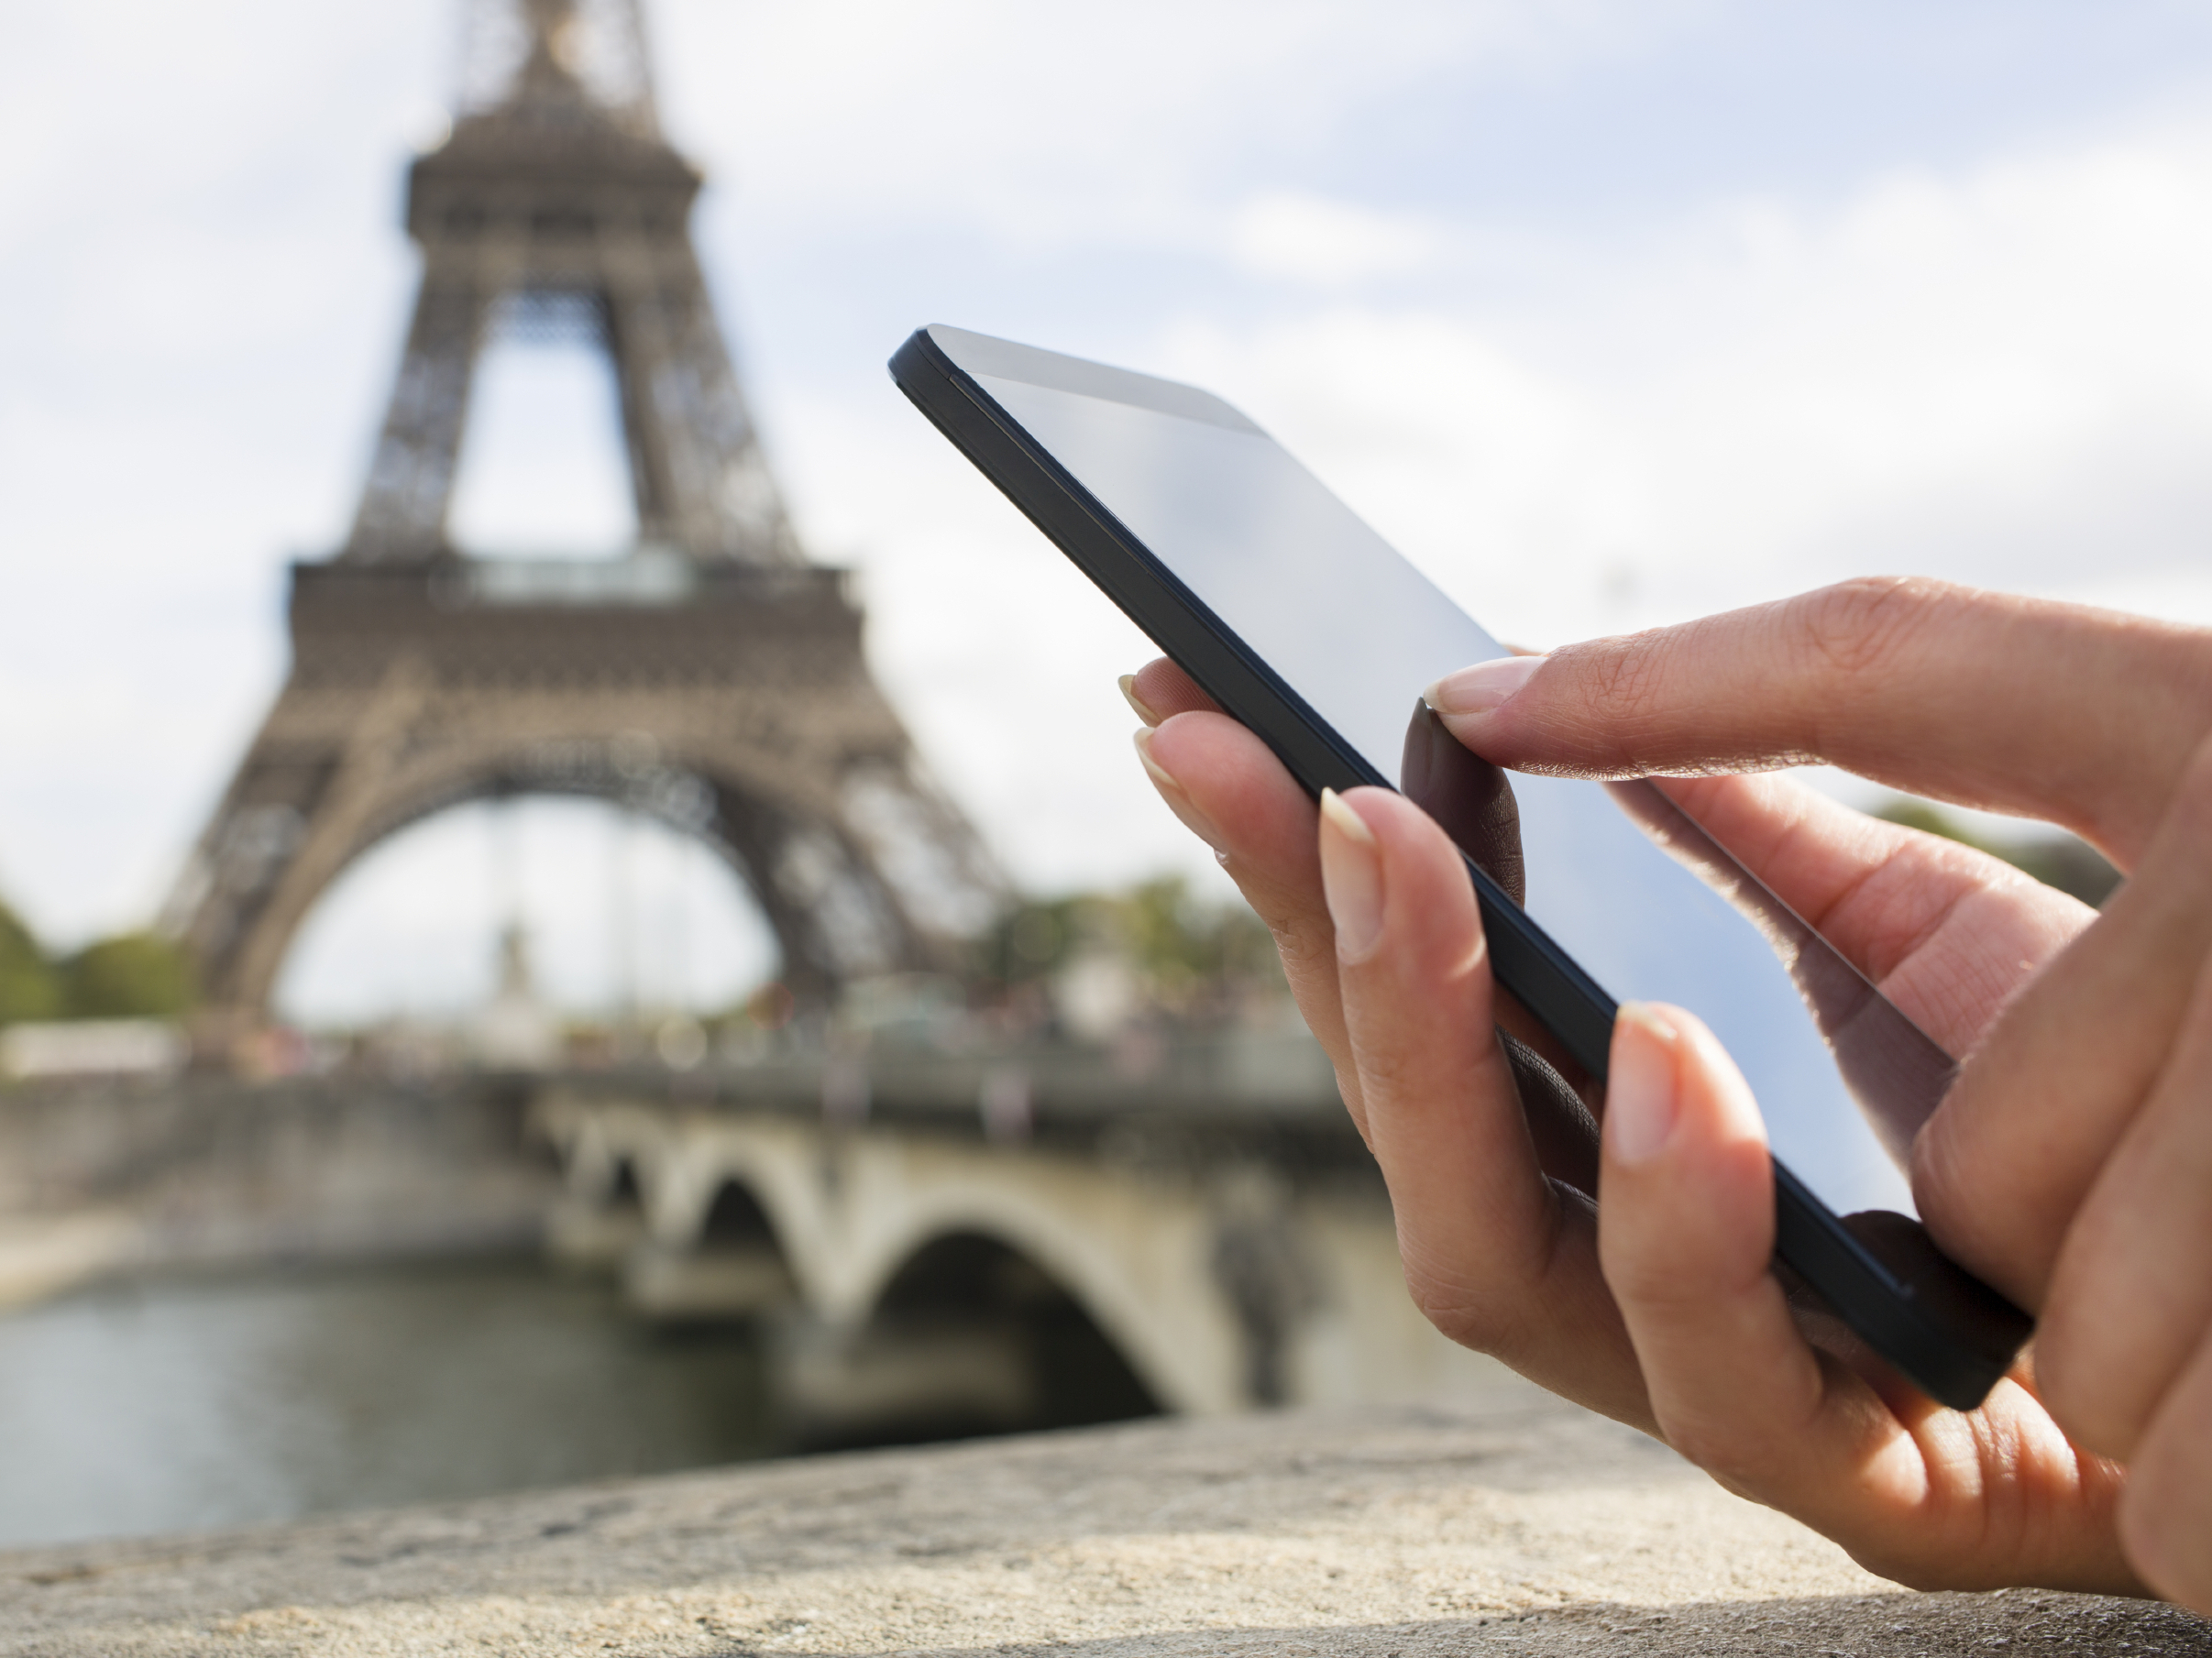 Lost In Translation: French Rule On Work Email Covers Fewer Workers